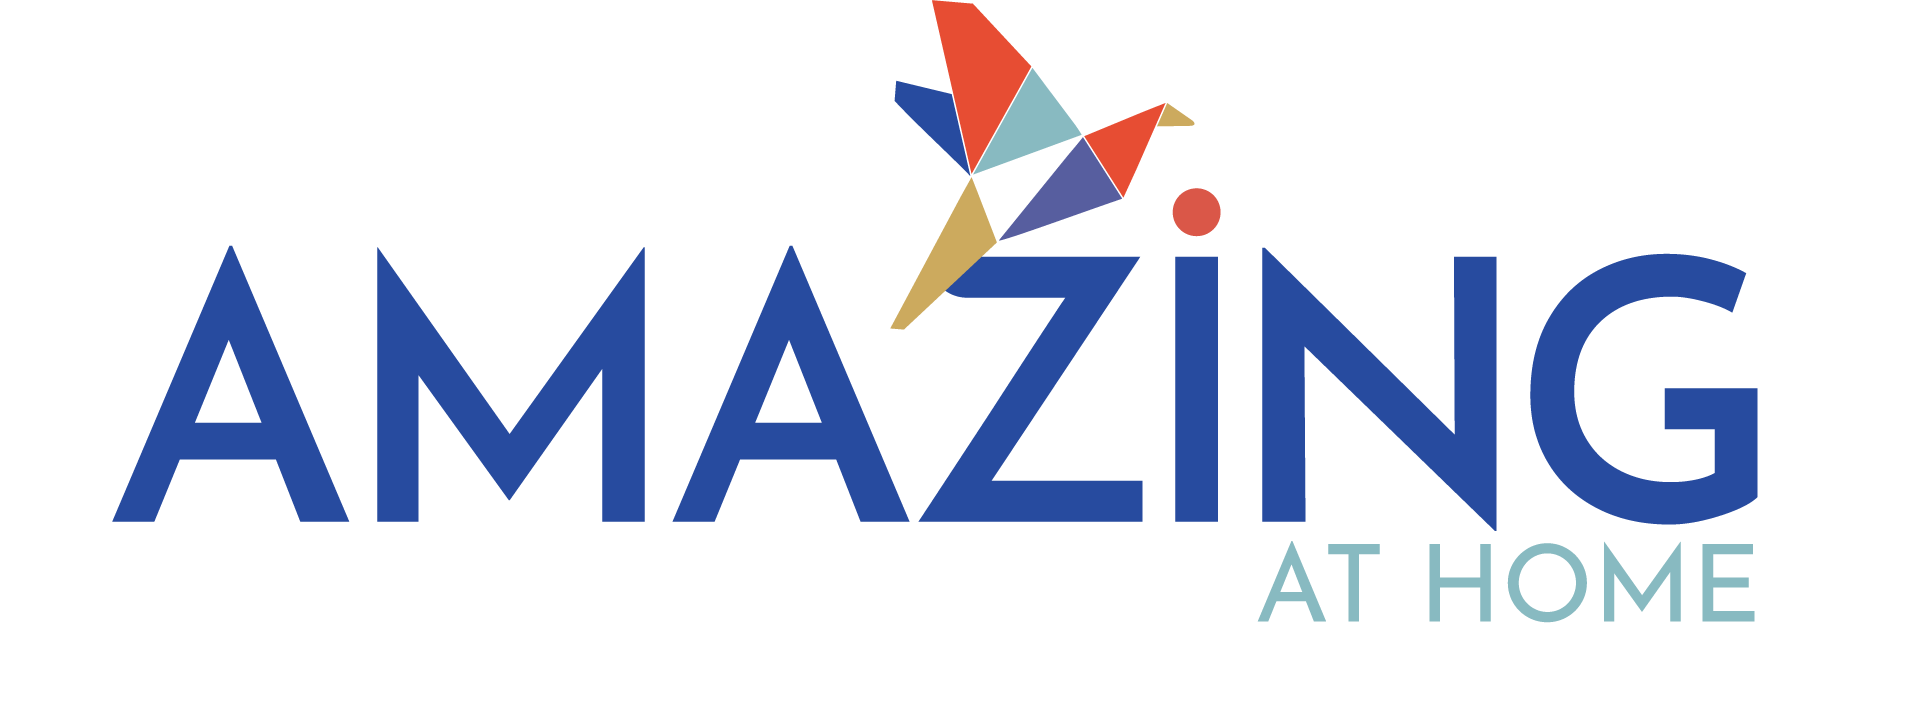 Amazing at Home Logo